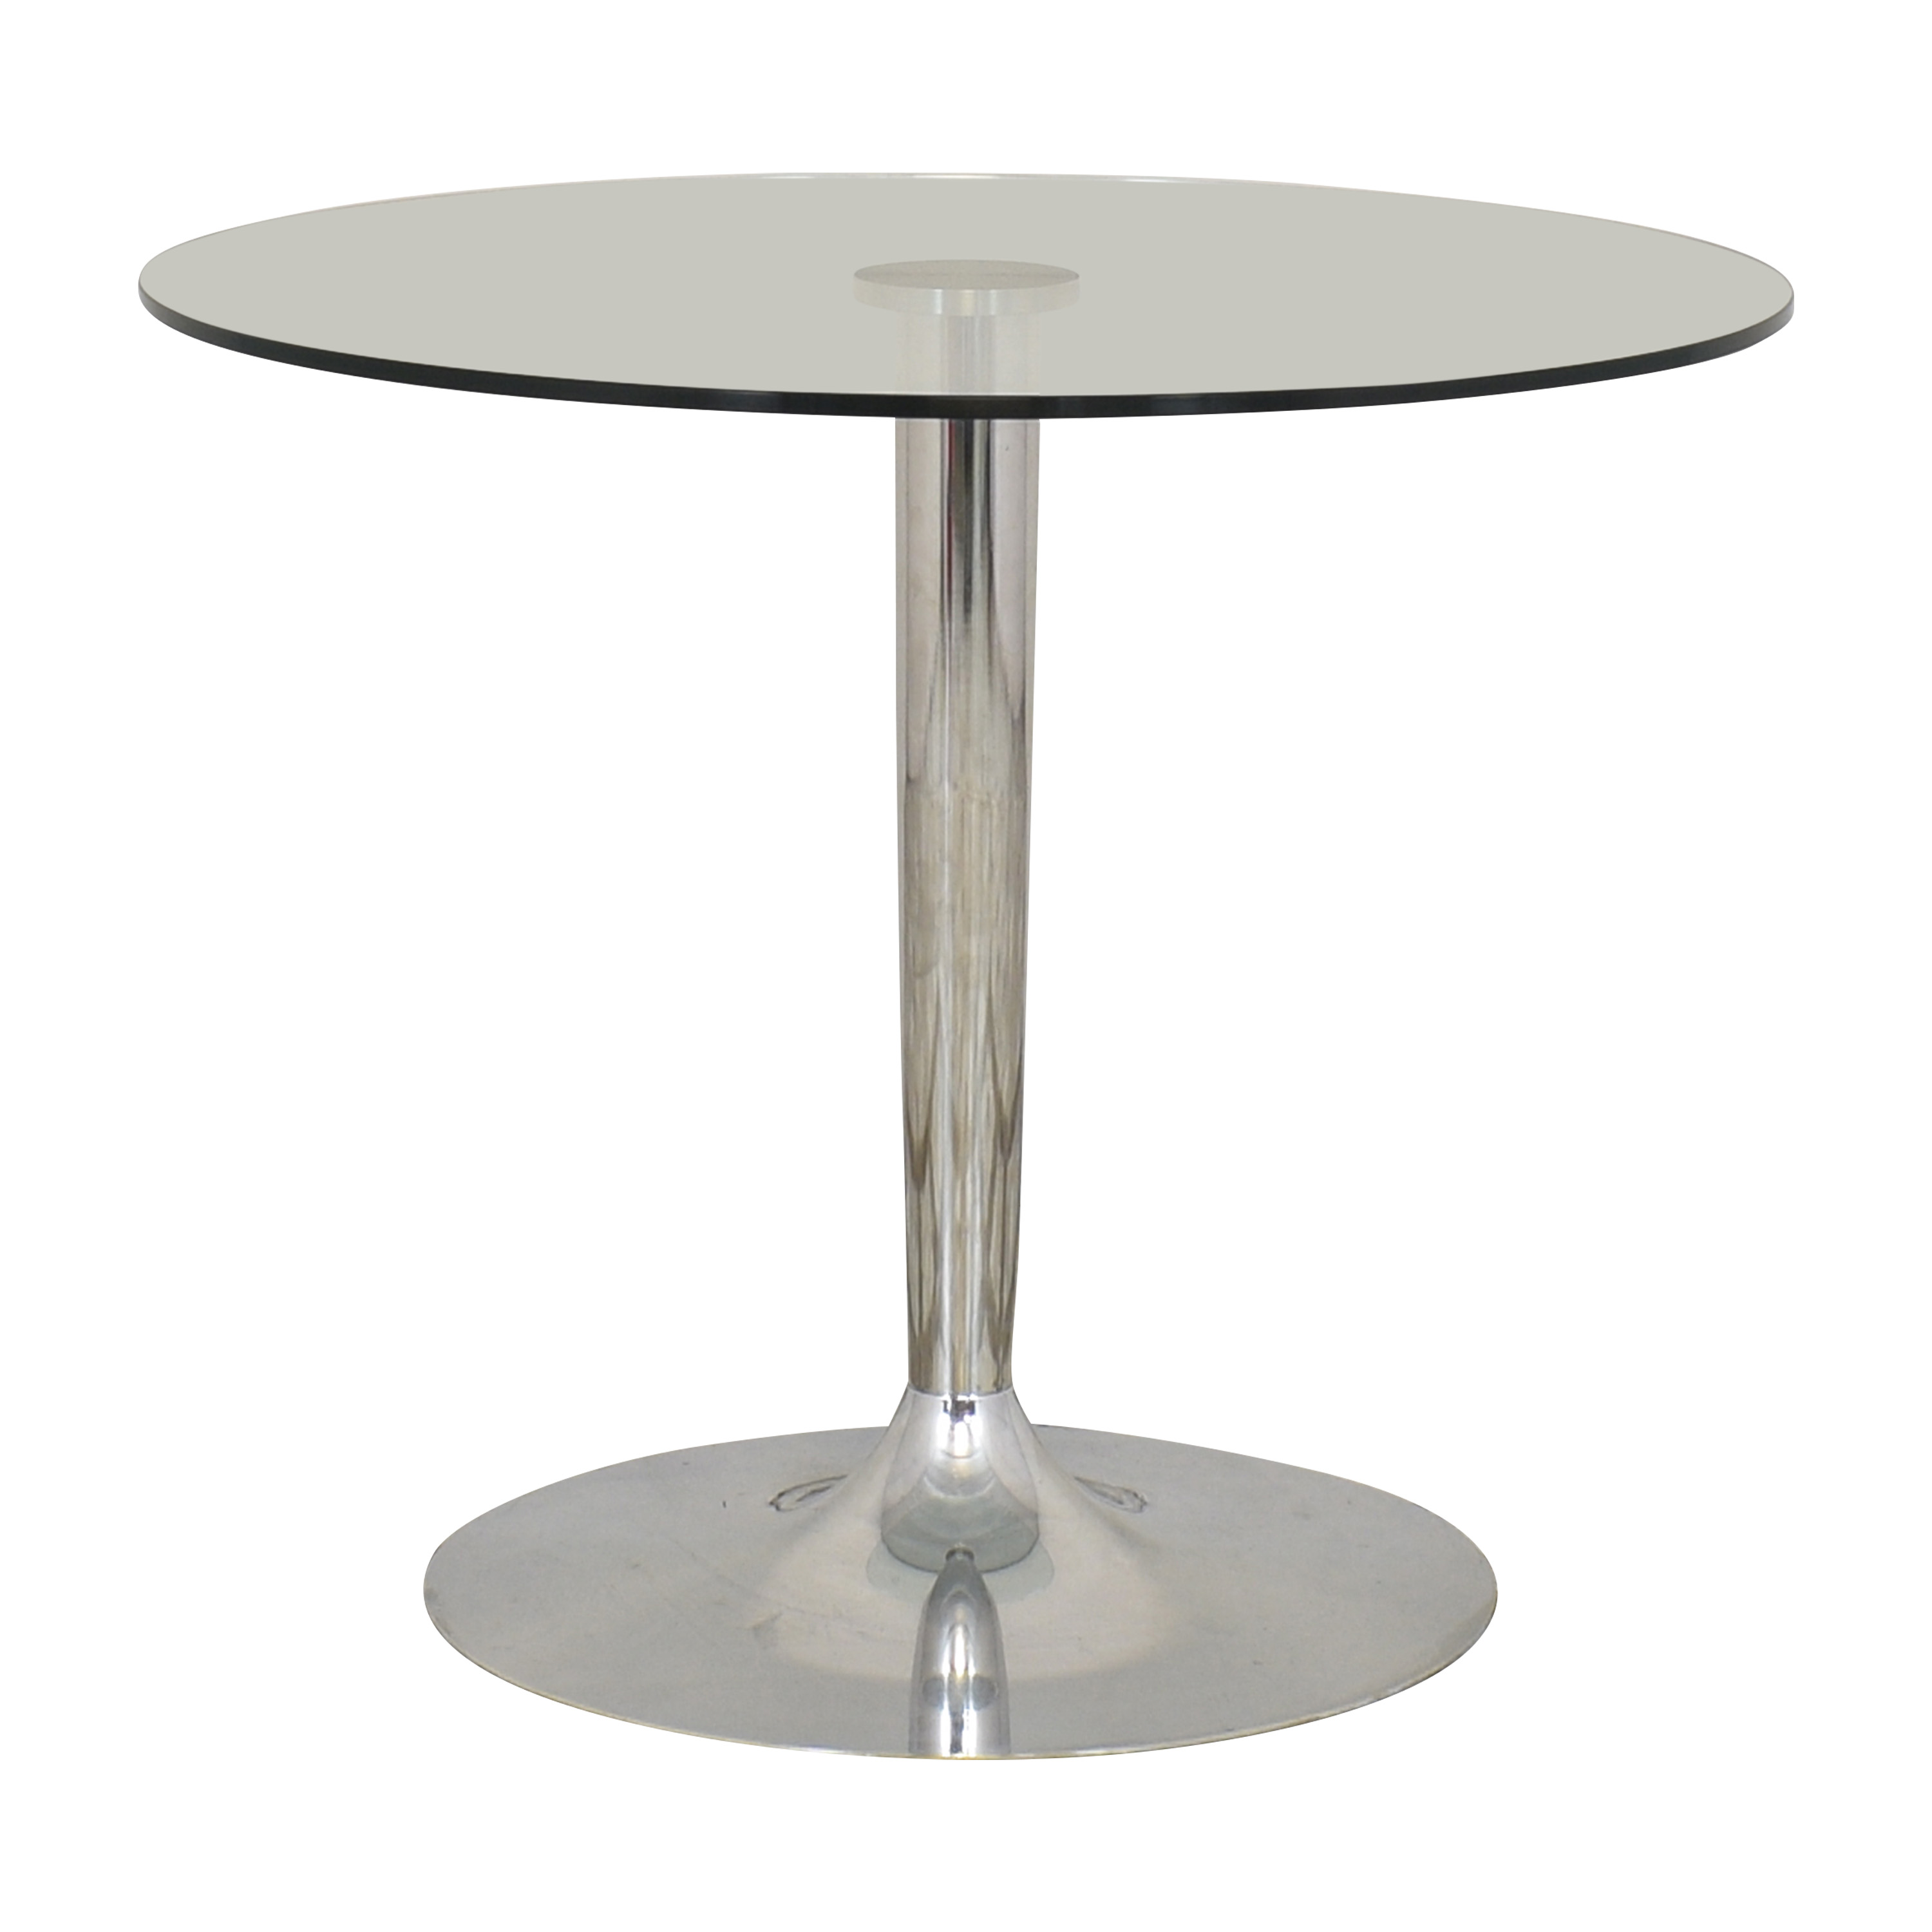 Calligaris Calligaris Planet Dining Table used